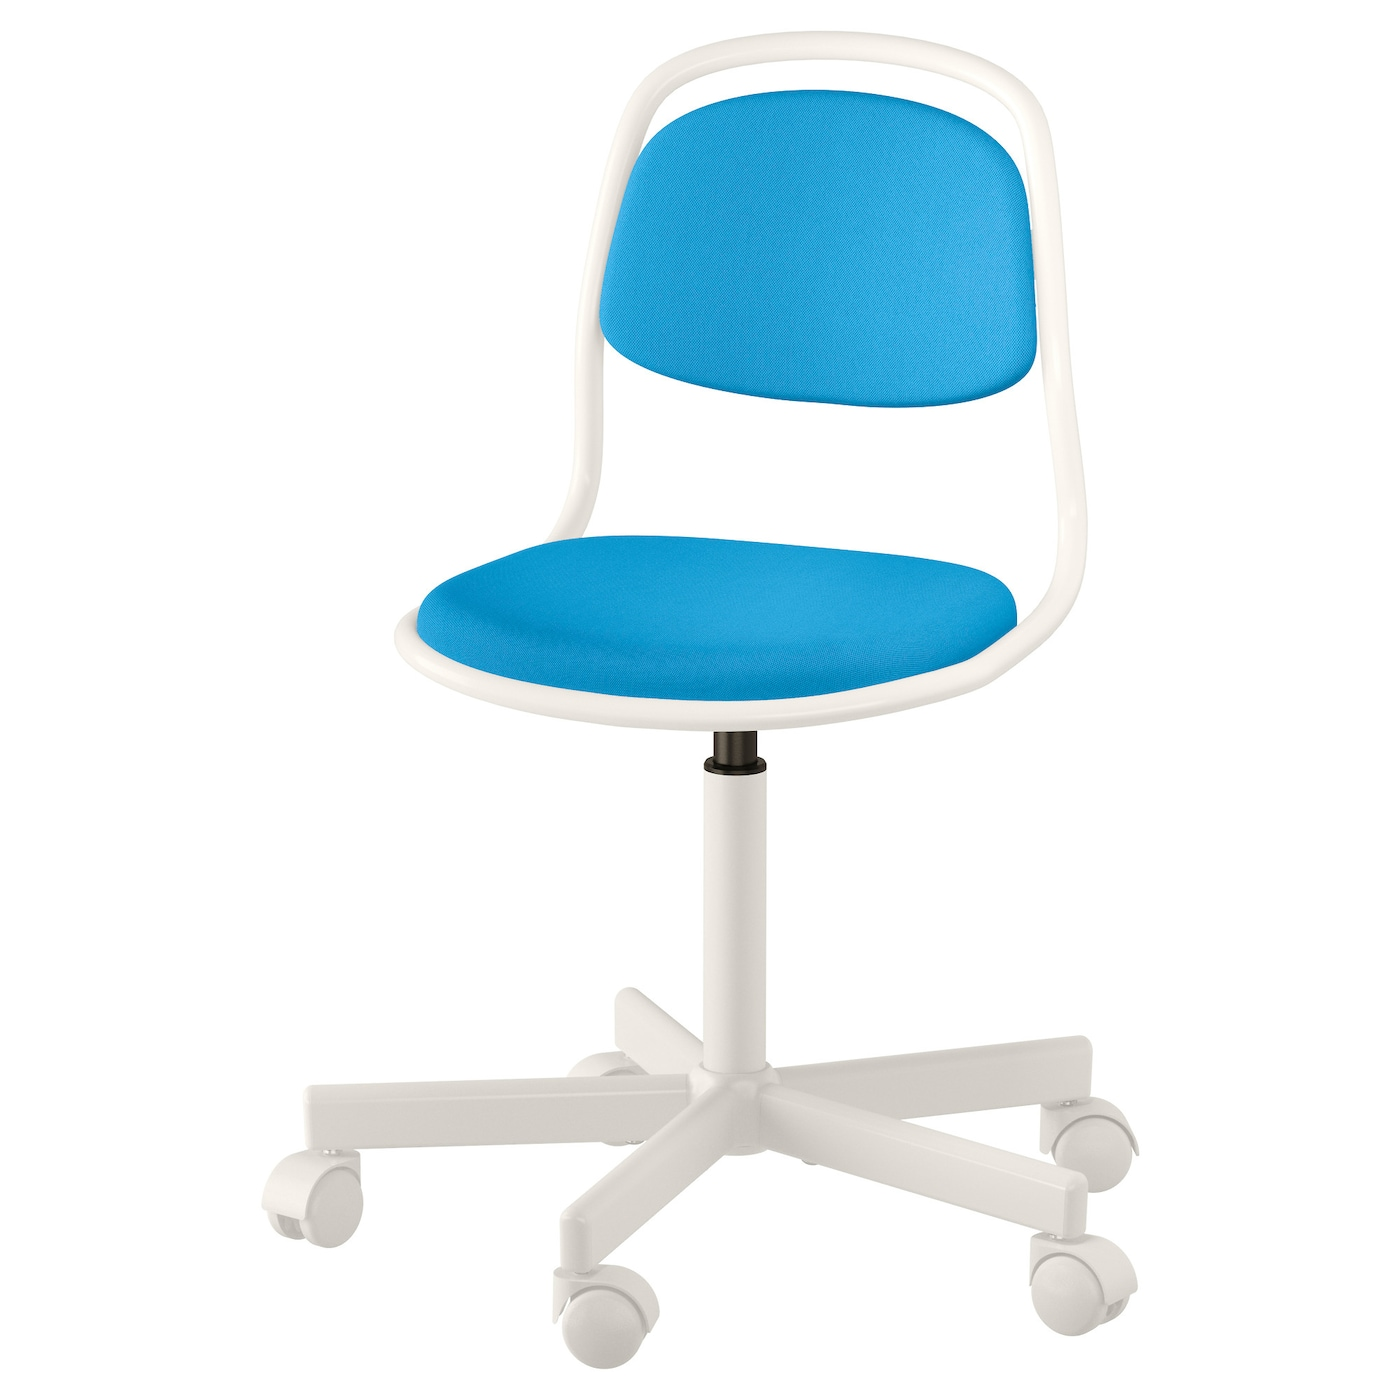 Rfj ll children 39 s desk chair white vissle bright blue ikea - White desk chairs ikea ...